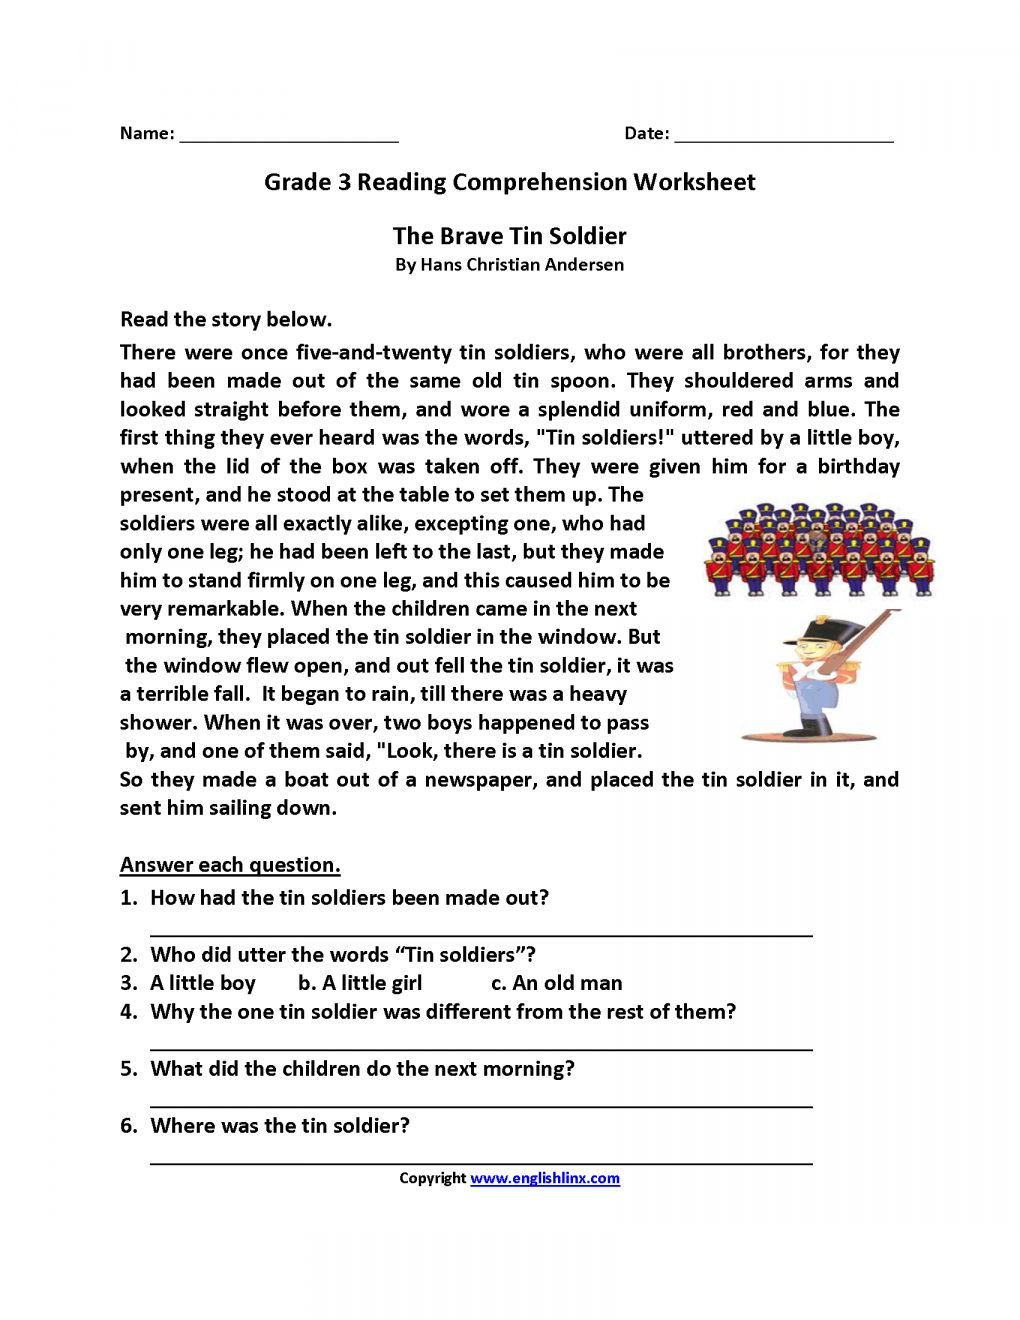 7 3rd Grade Reading Comprehension Worksheets With Questions In 2020 Comprehension Worksheets Reading Comprehension Worksheets 2nd Grade Reading Comprehension